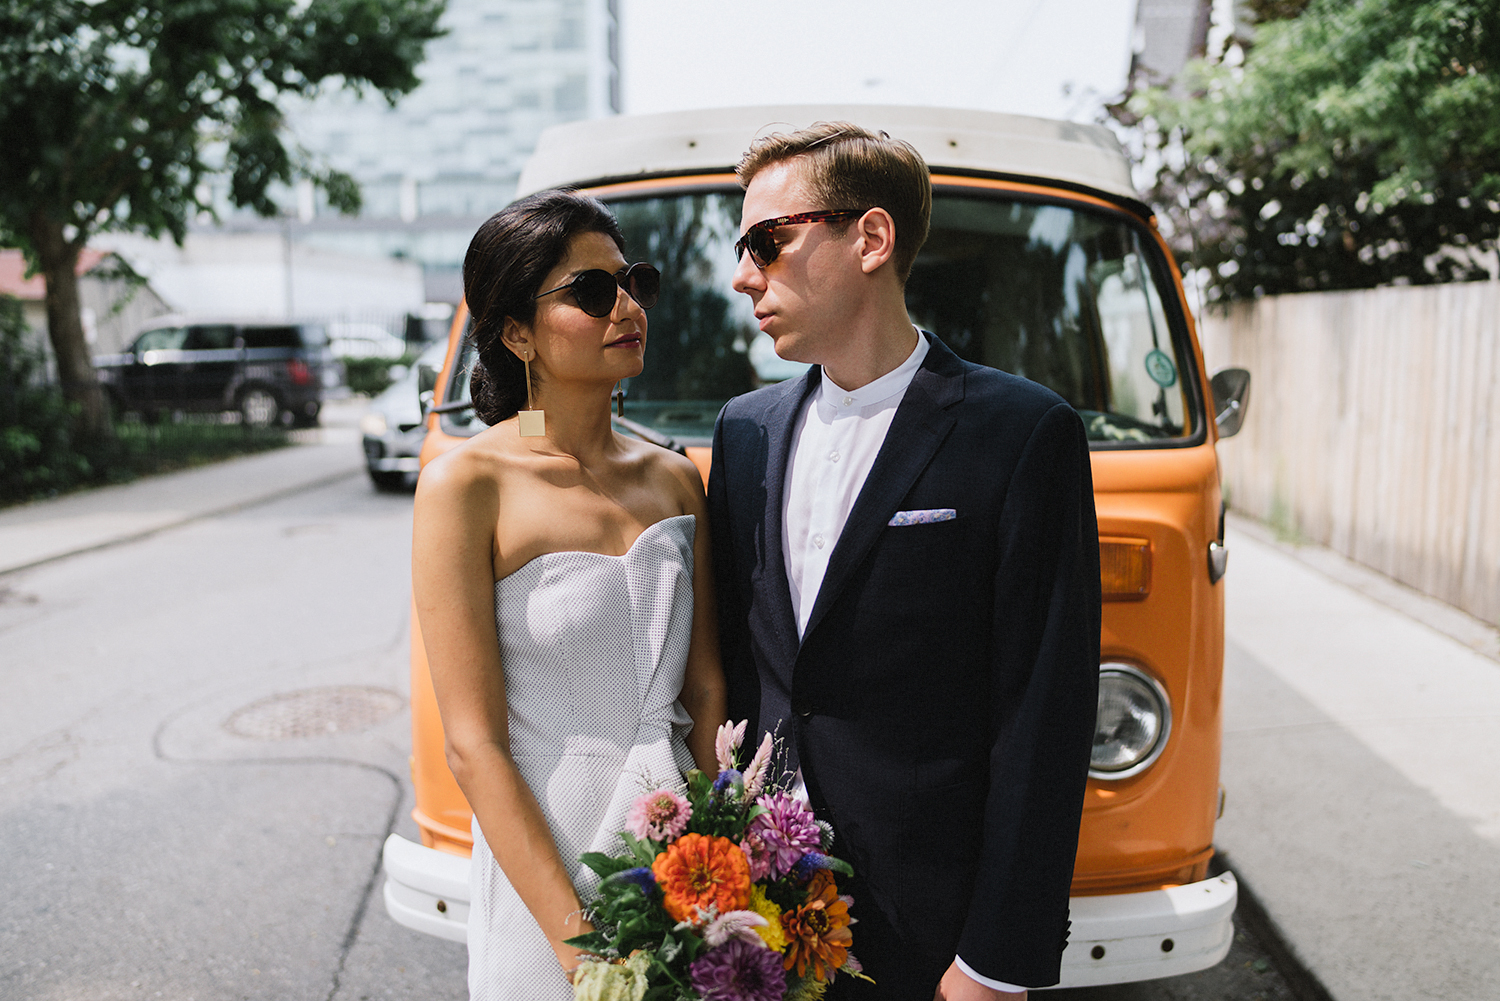 Intimate-Toronto-Pop-Up-Elopement-Downtown-Urban-Kensington-film-analog-photography-toronto-wedding-photographers-alternative-hipster-bride-and-groom-badass-candid-photos-details-old-van-volkswagen-love-love.jpg